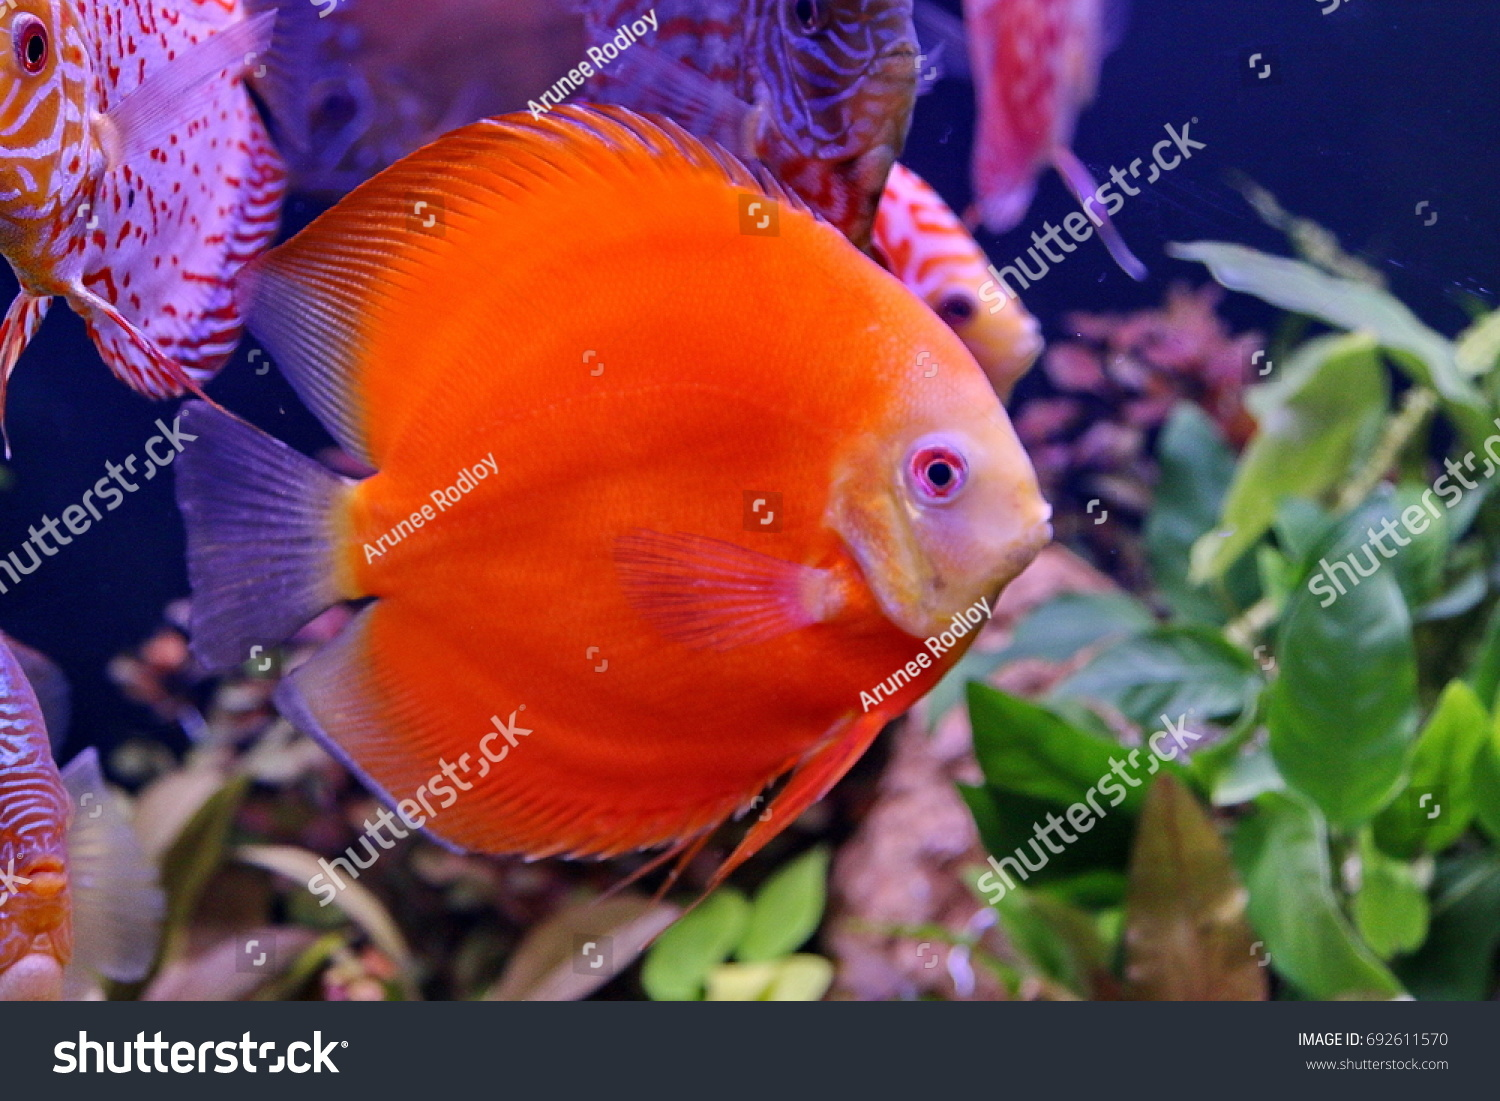 Funky Color Fish Tank Gallery - Drawing Coloring - androidharga.info